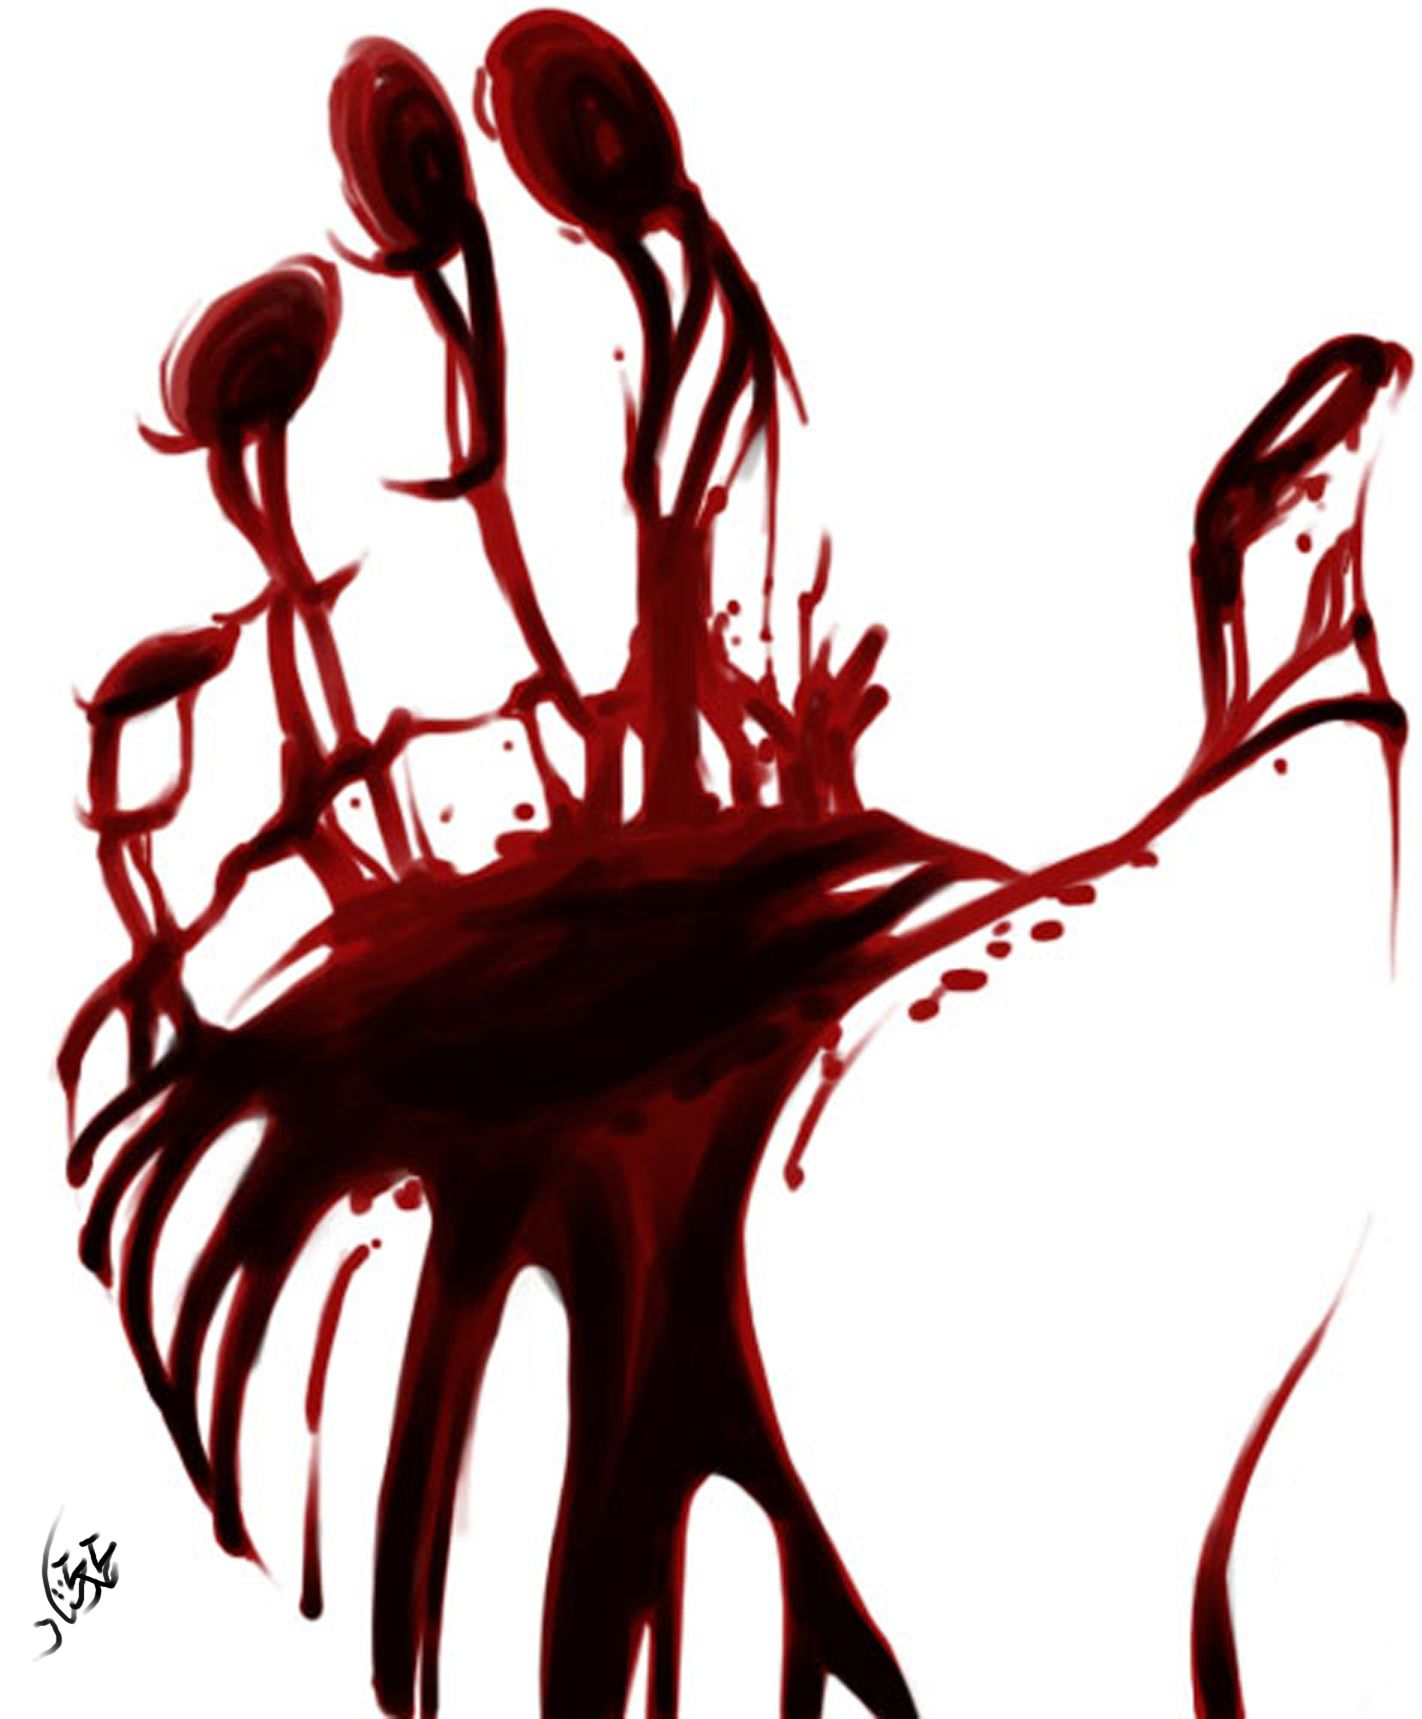 blood | by u13kkucel on Sep.16, 2012, under Blood Archetype